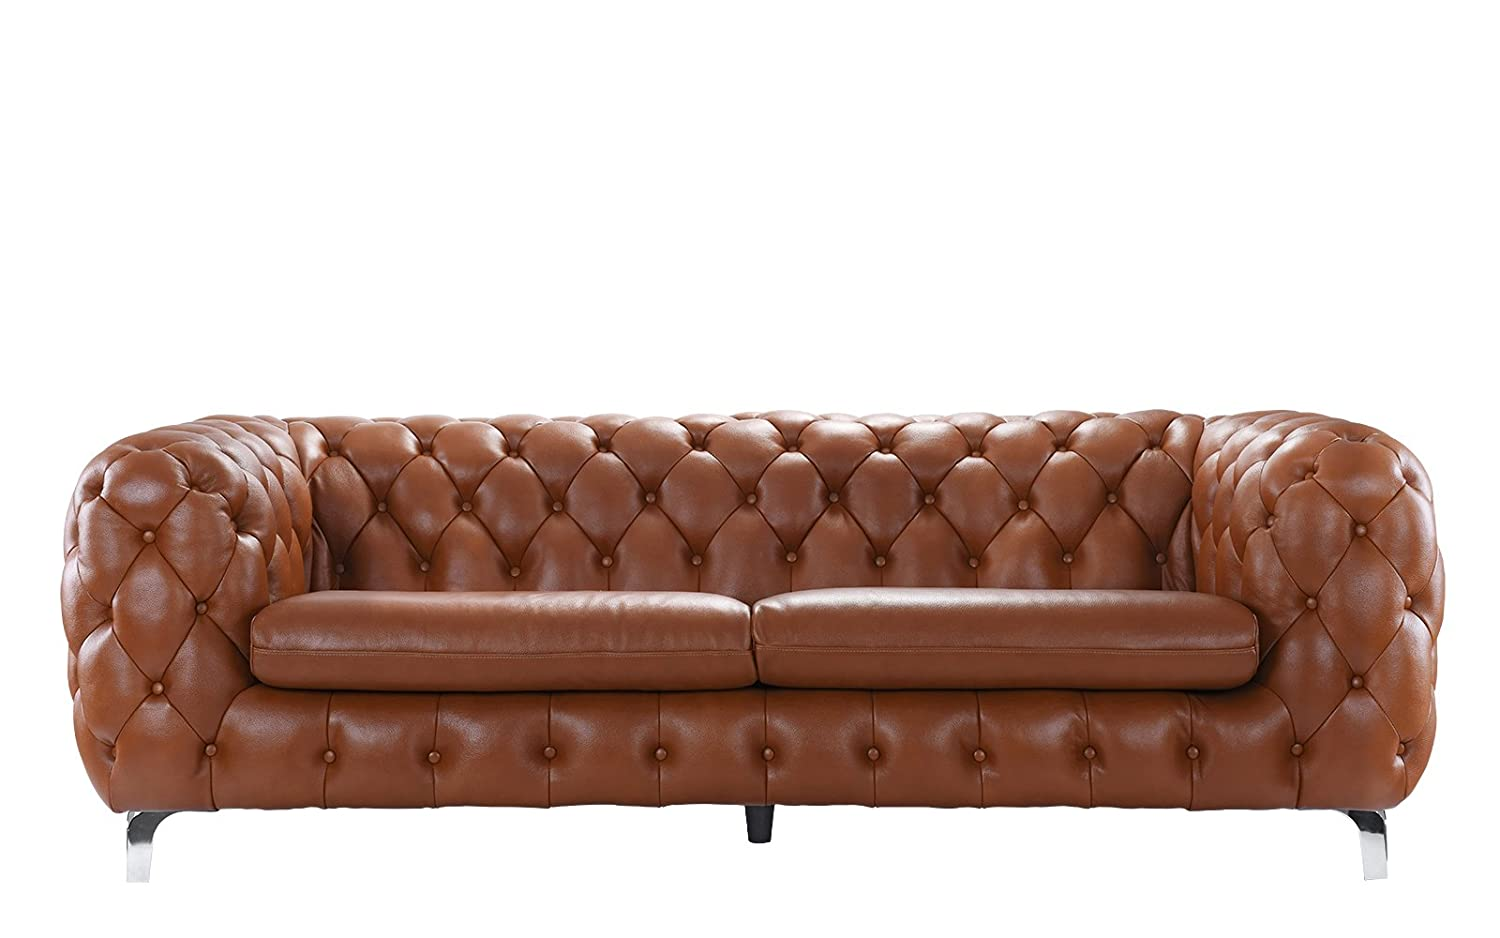 Amazon: Modern Real Leather Tufted Chesterfield Sofa Couch With  Built-in Shelving Space (Camel): Kitchen & Dining